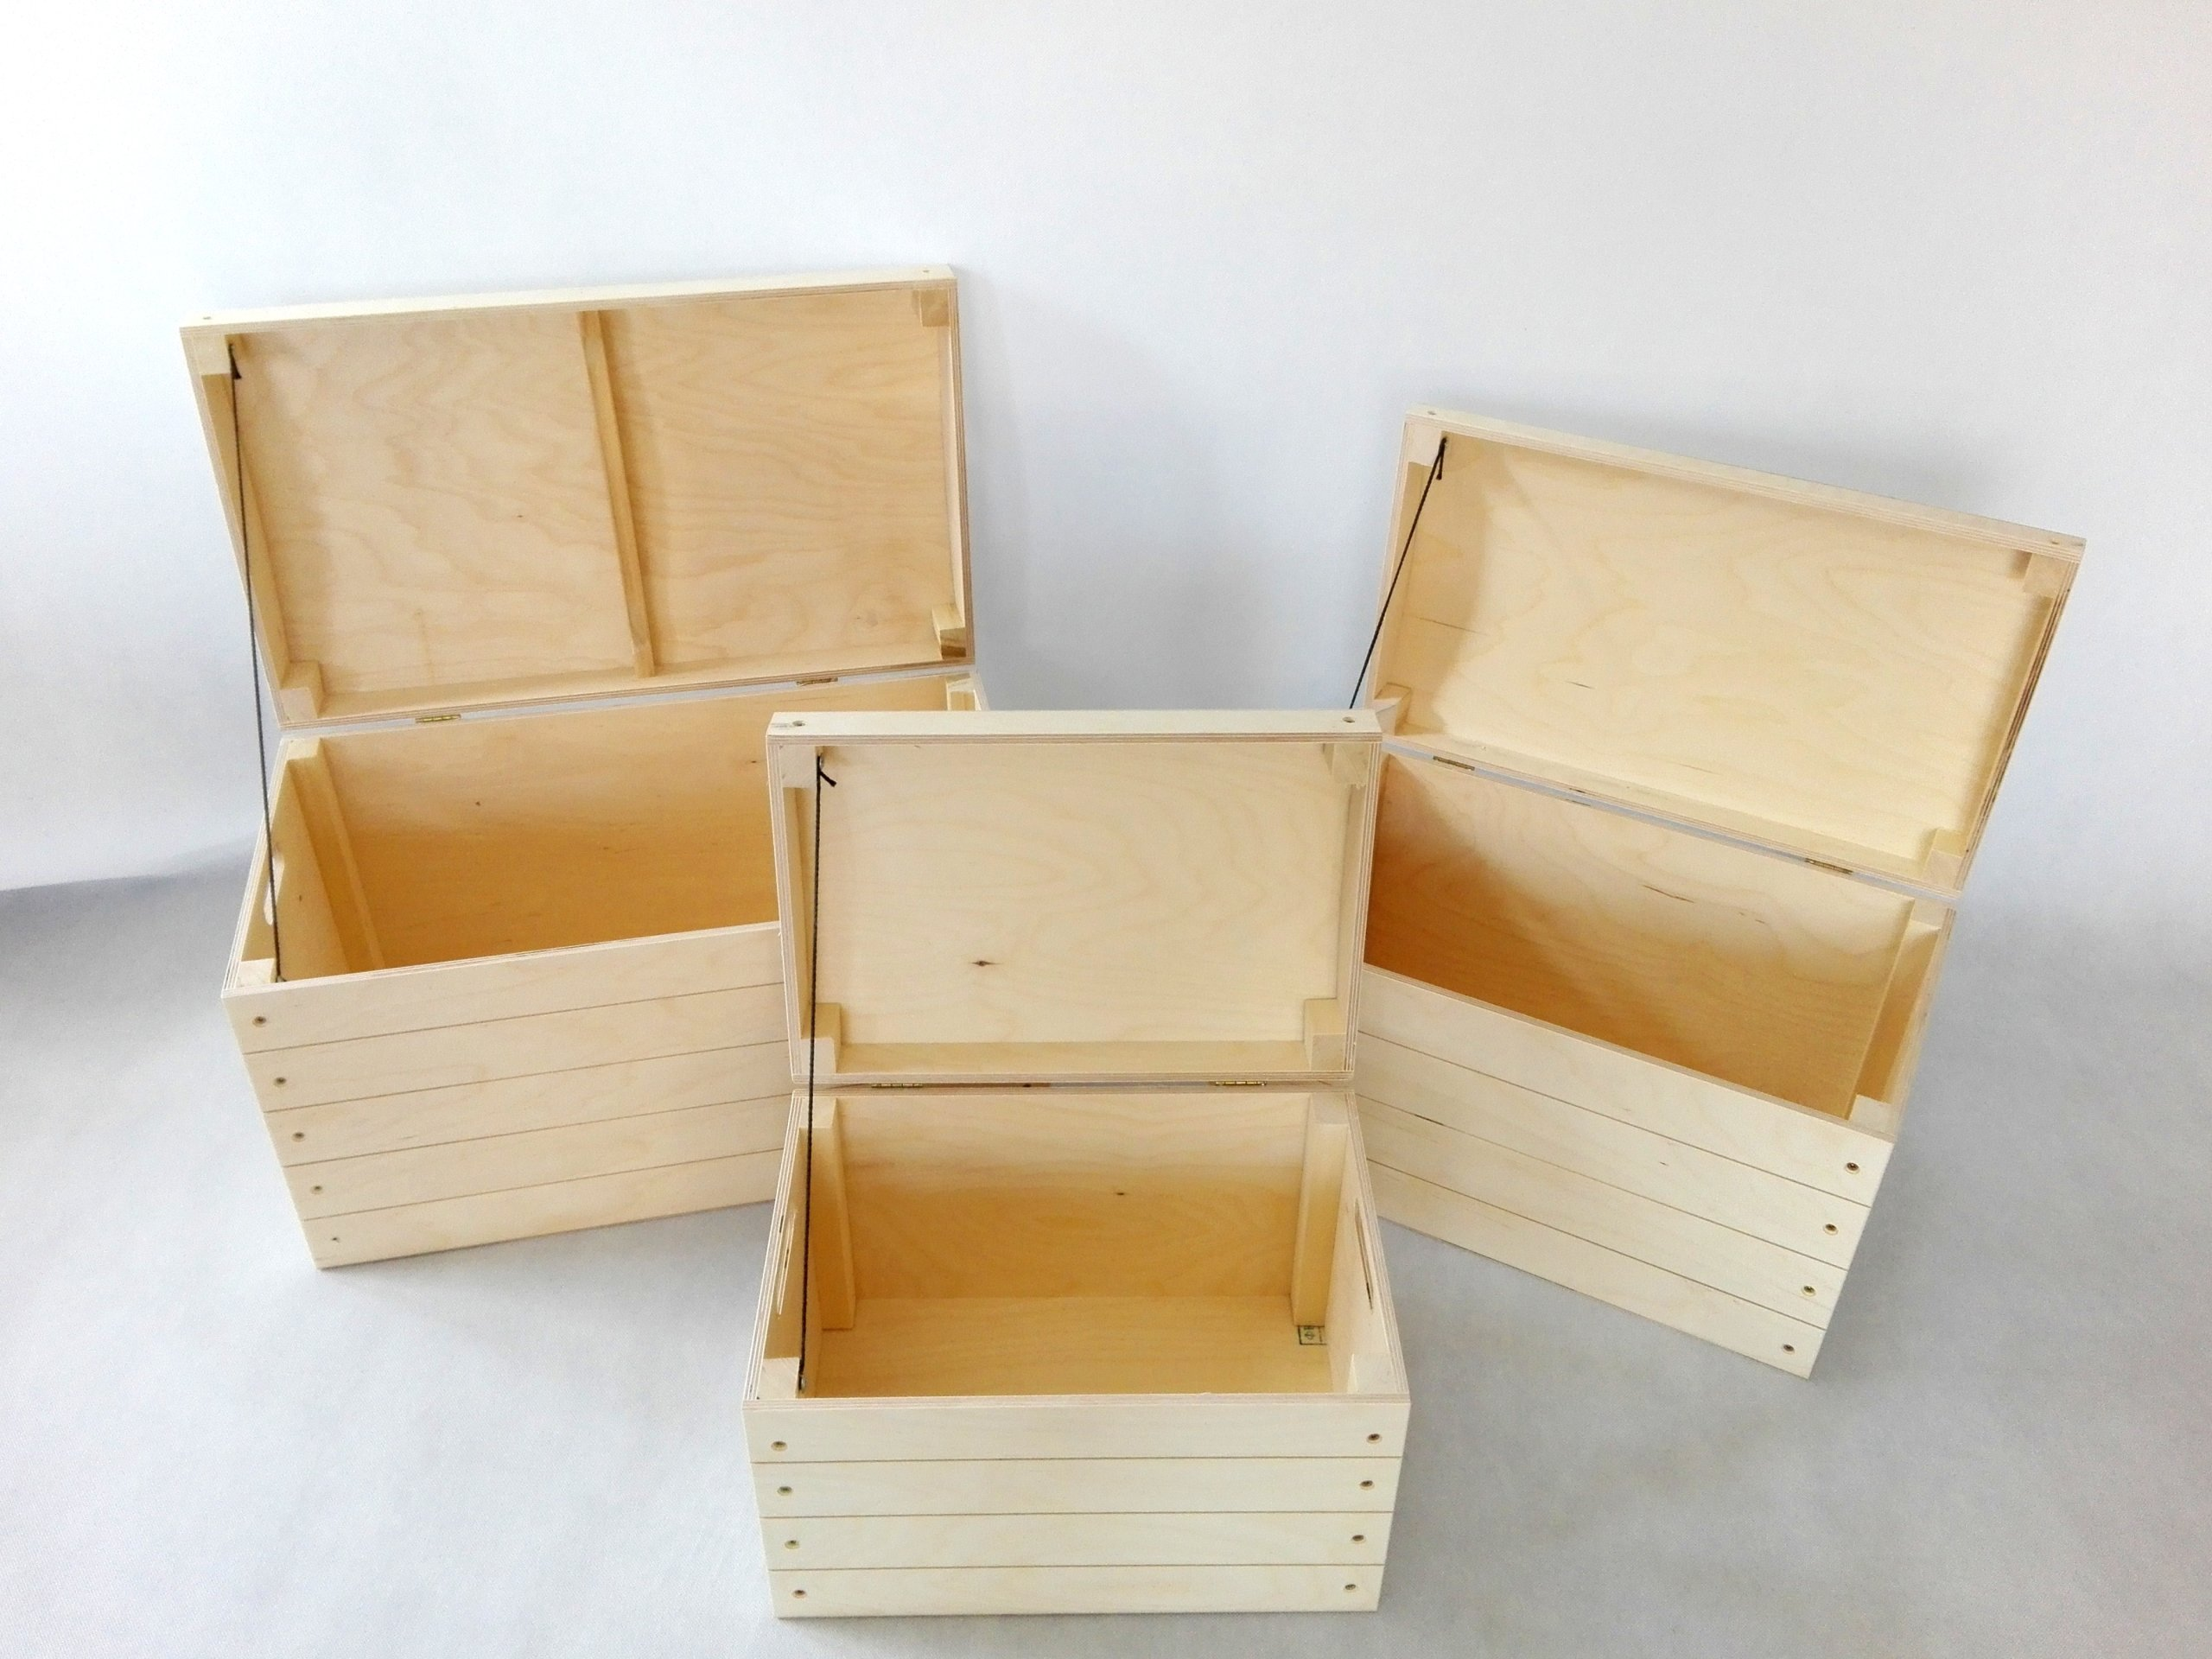 Set of 3 trunks